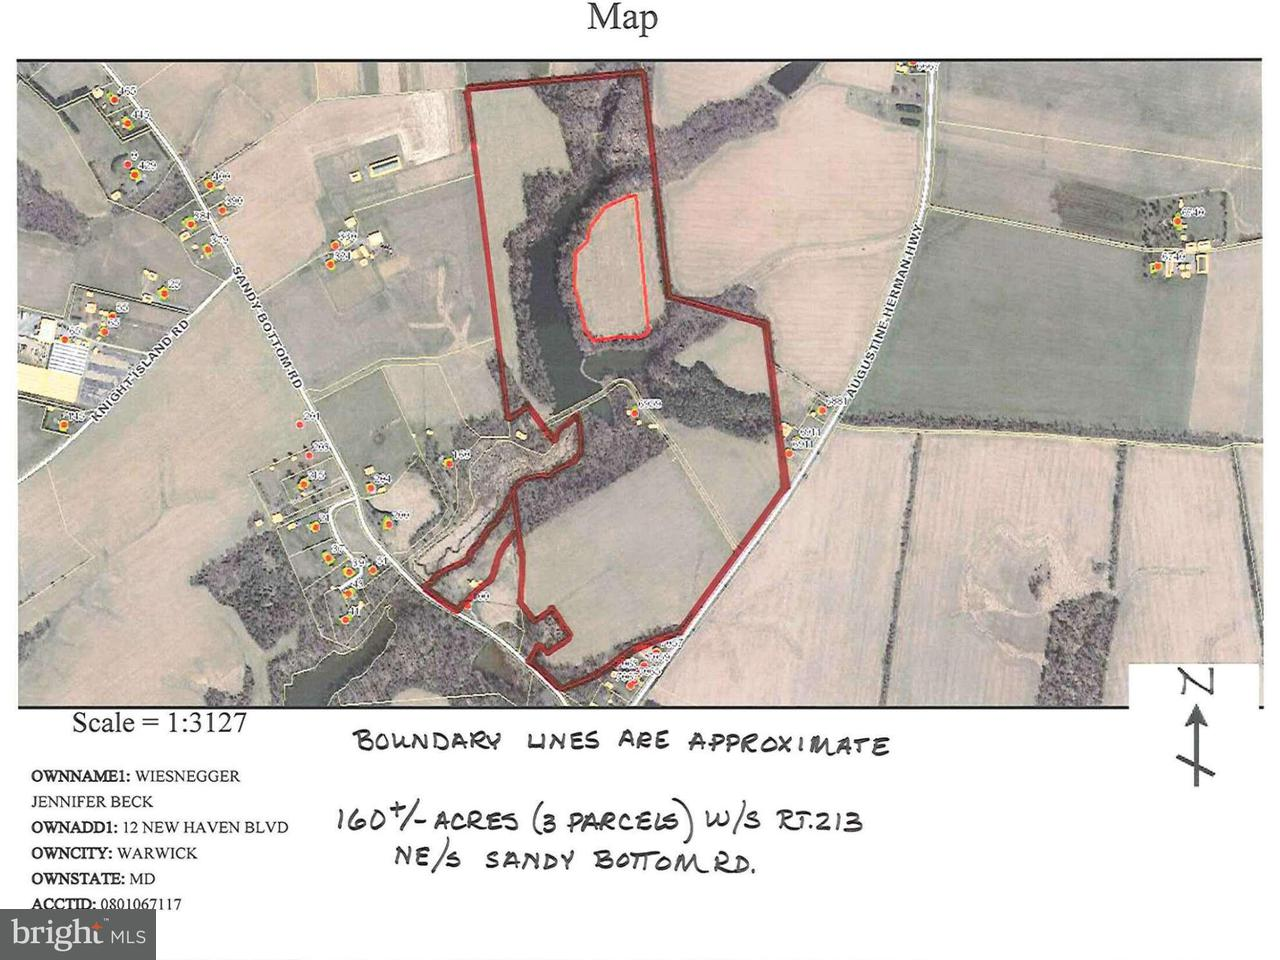 Land for Sale at AUGUSTINE HERMAN HWY AUGUSTINE HERMAN HWY Earleville, Maryland 21919 United States